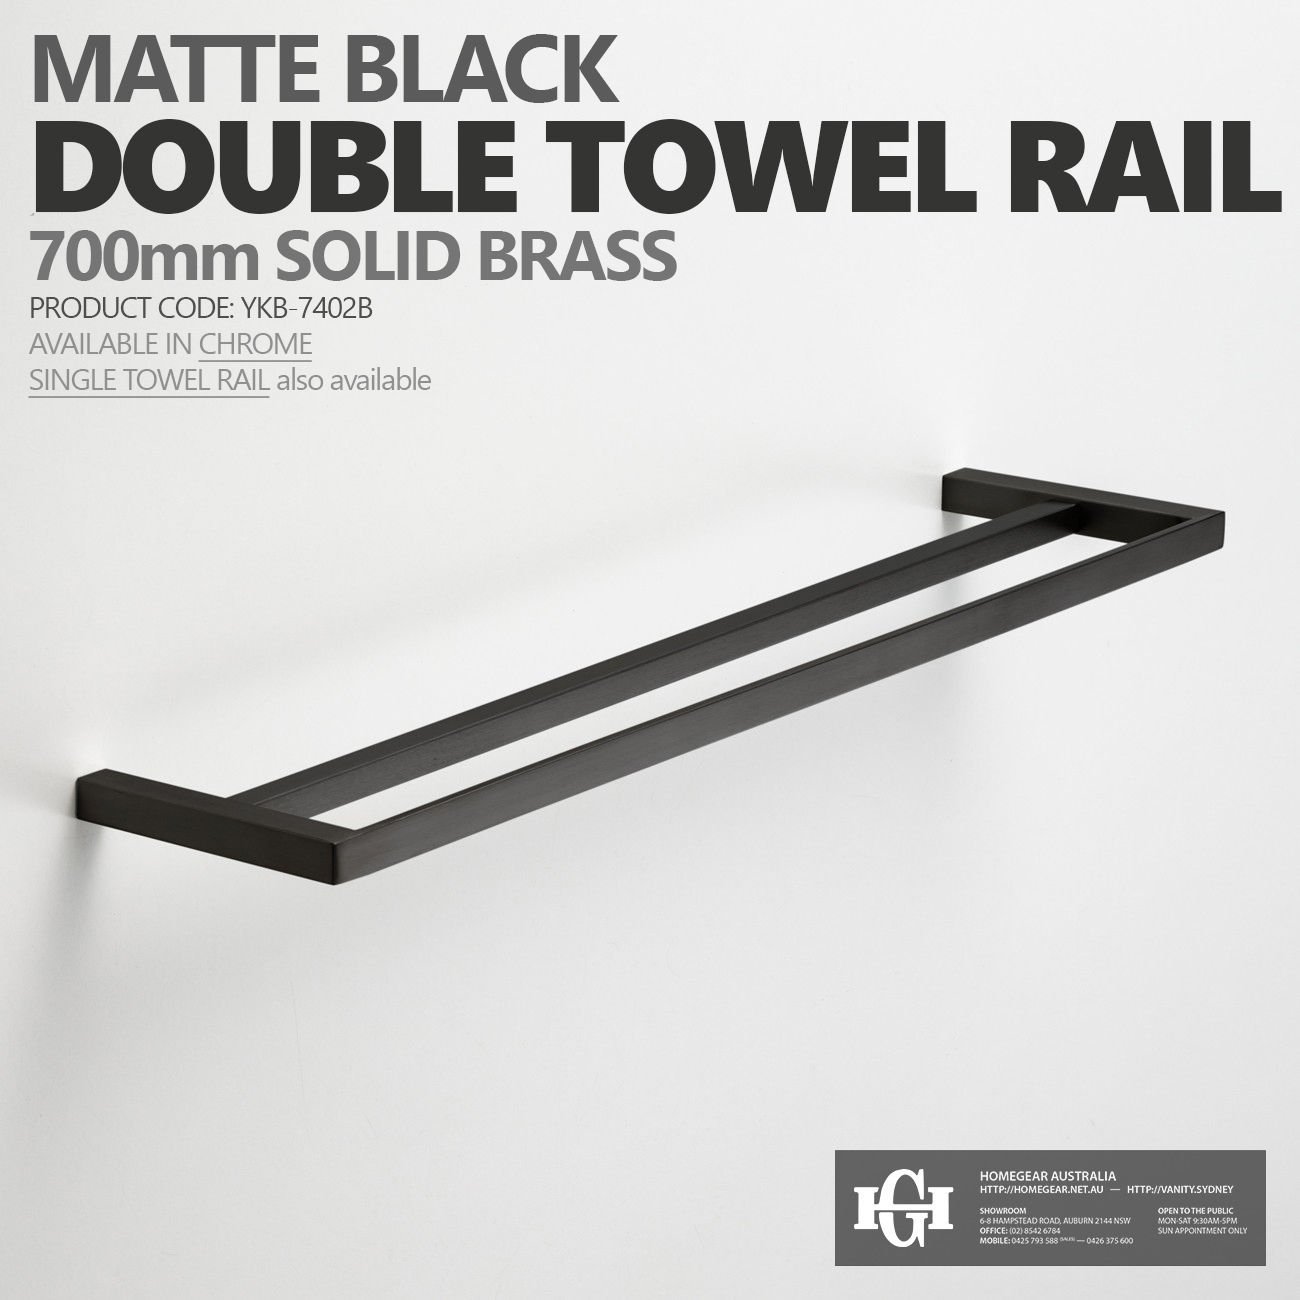 Black Bathroom Accessories Australia 700mm square matte black bathroom towel rail | single or double